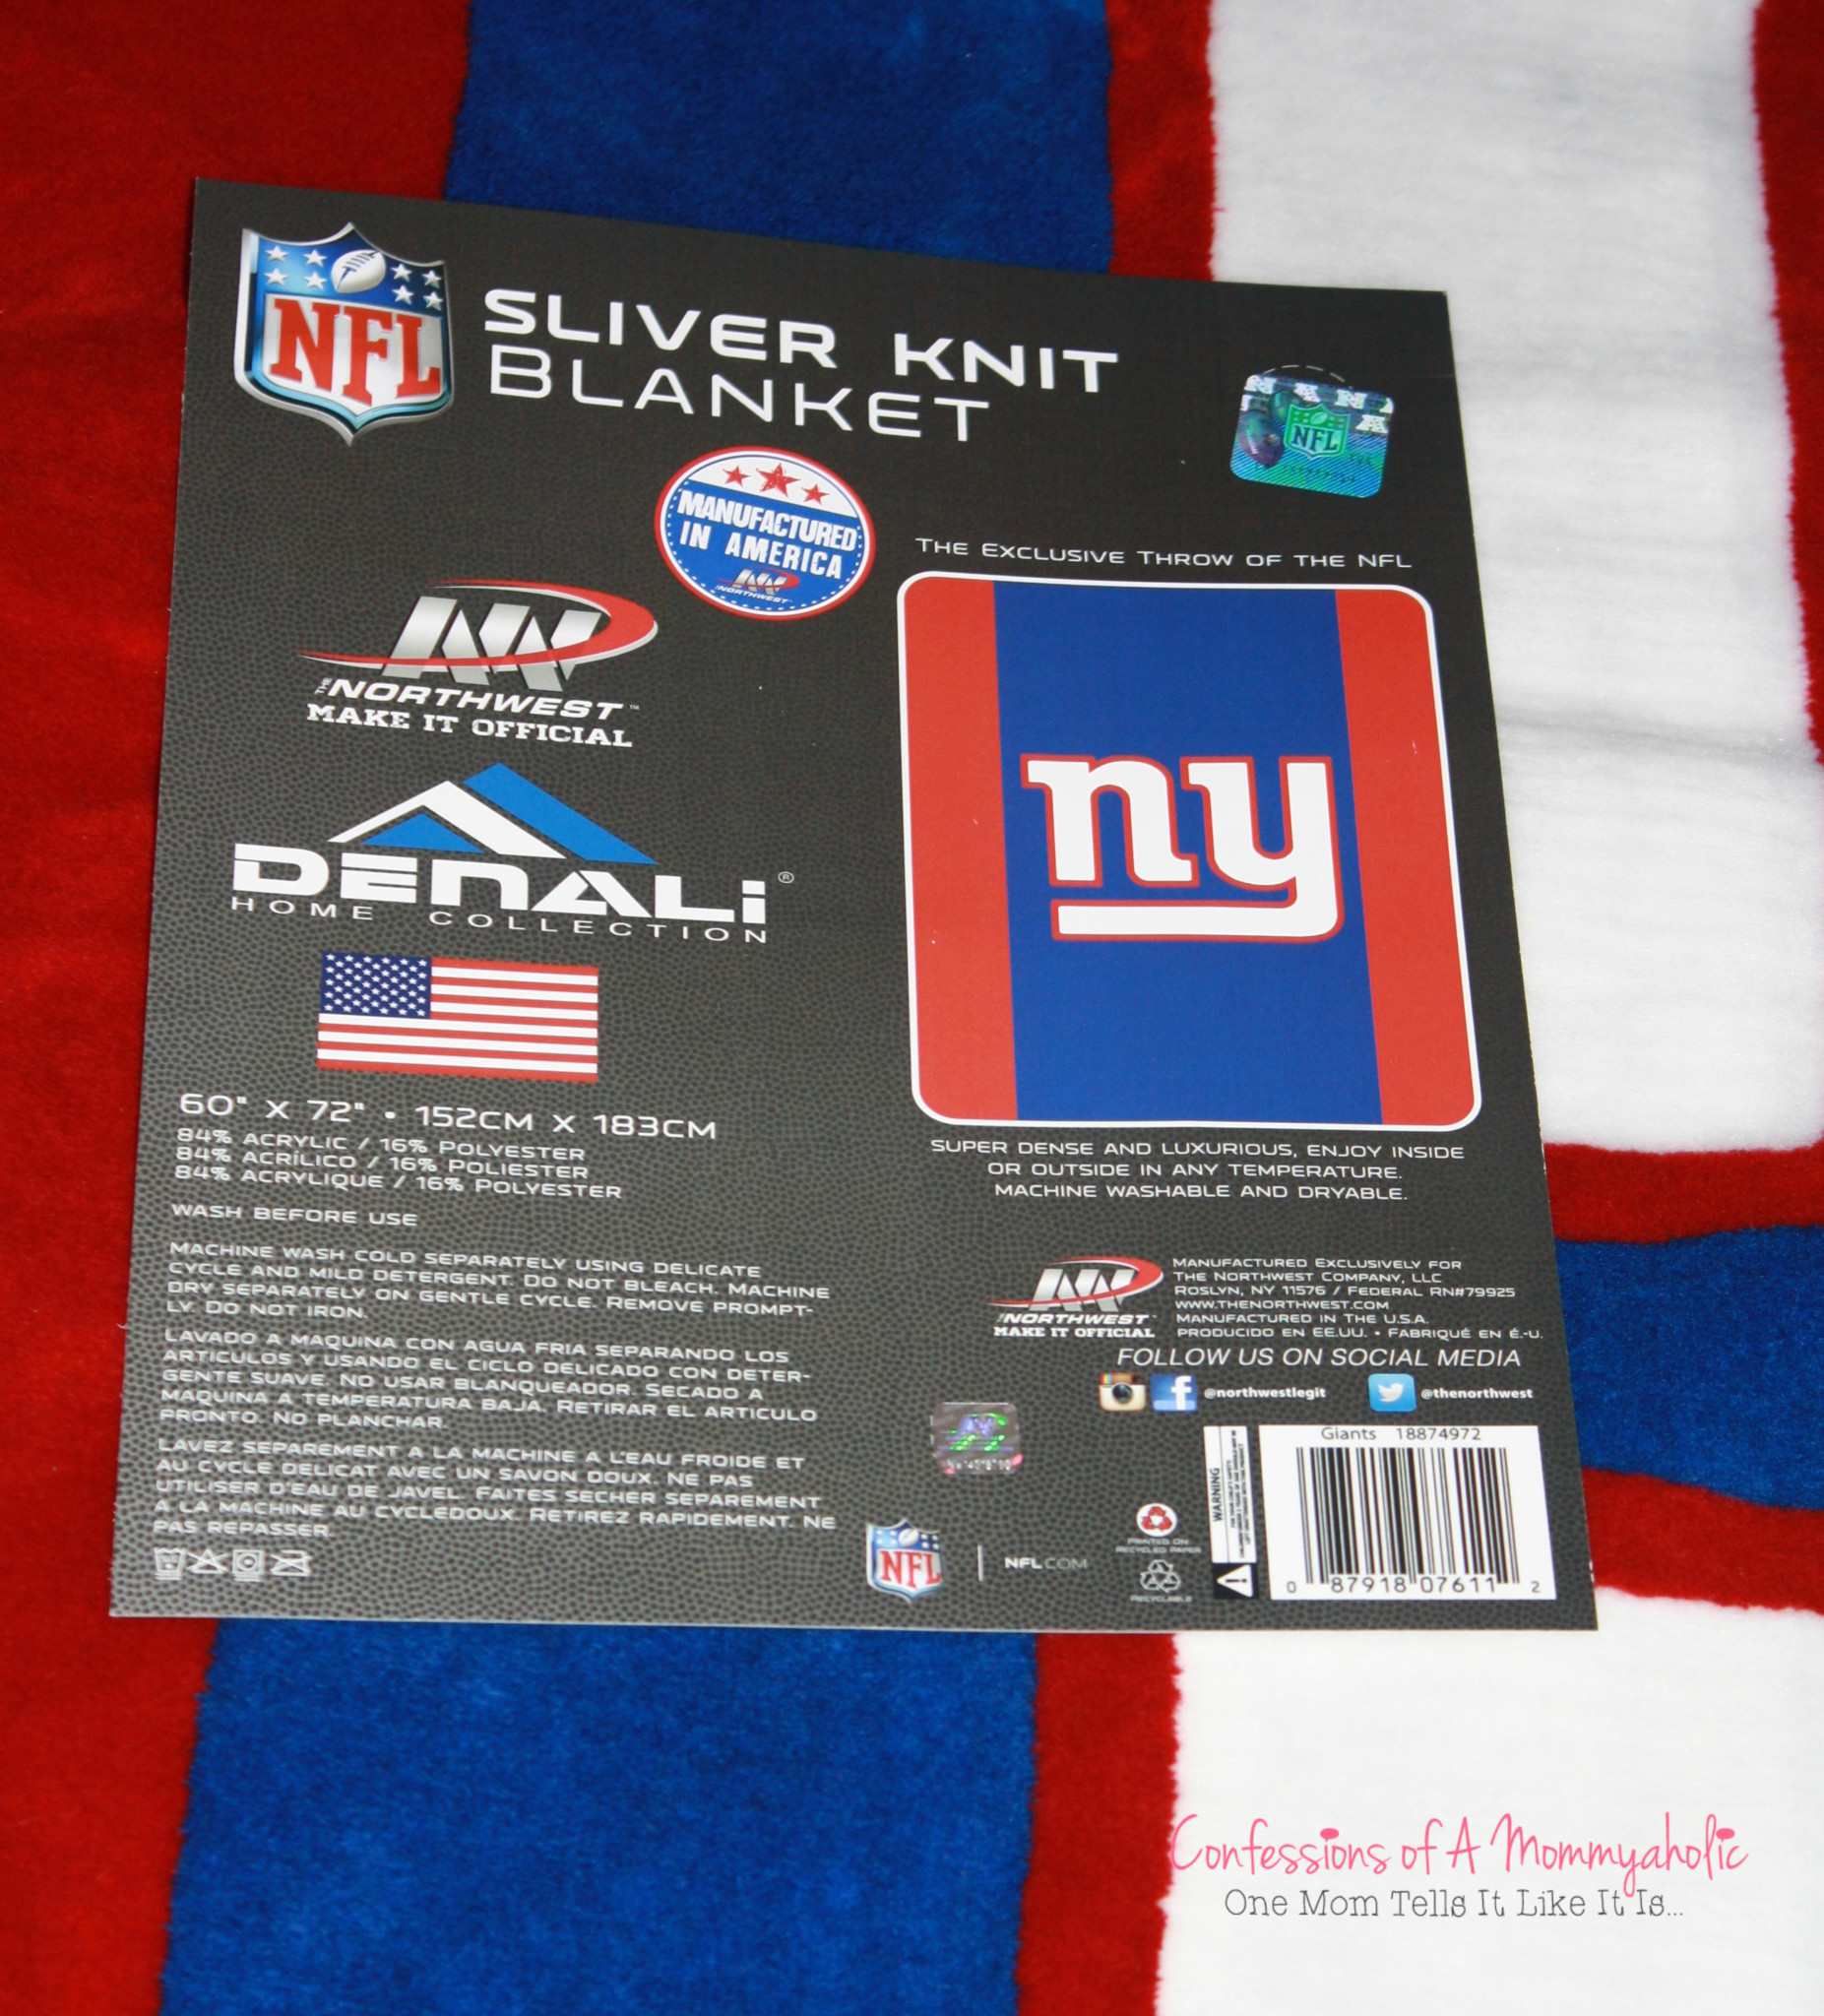 elite-fan-blanket-info